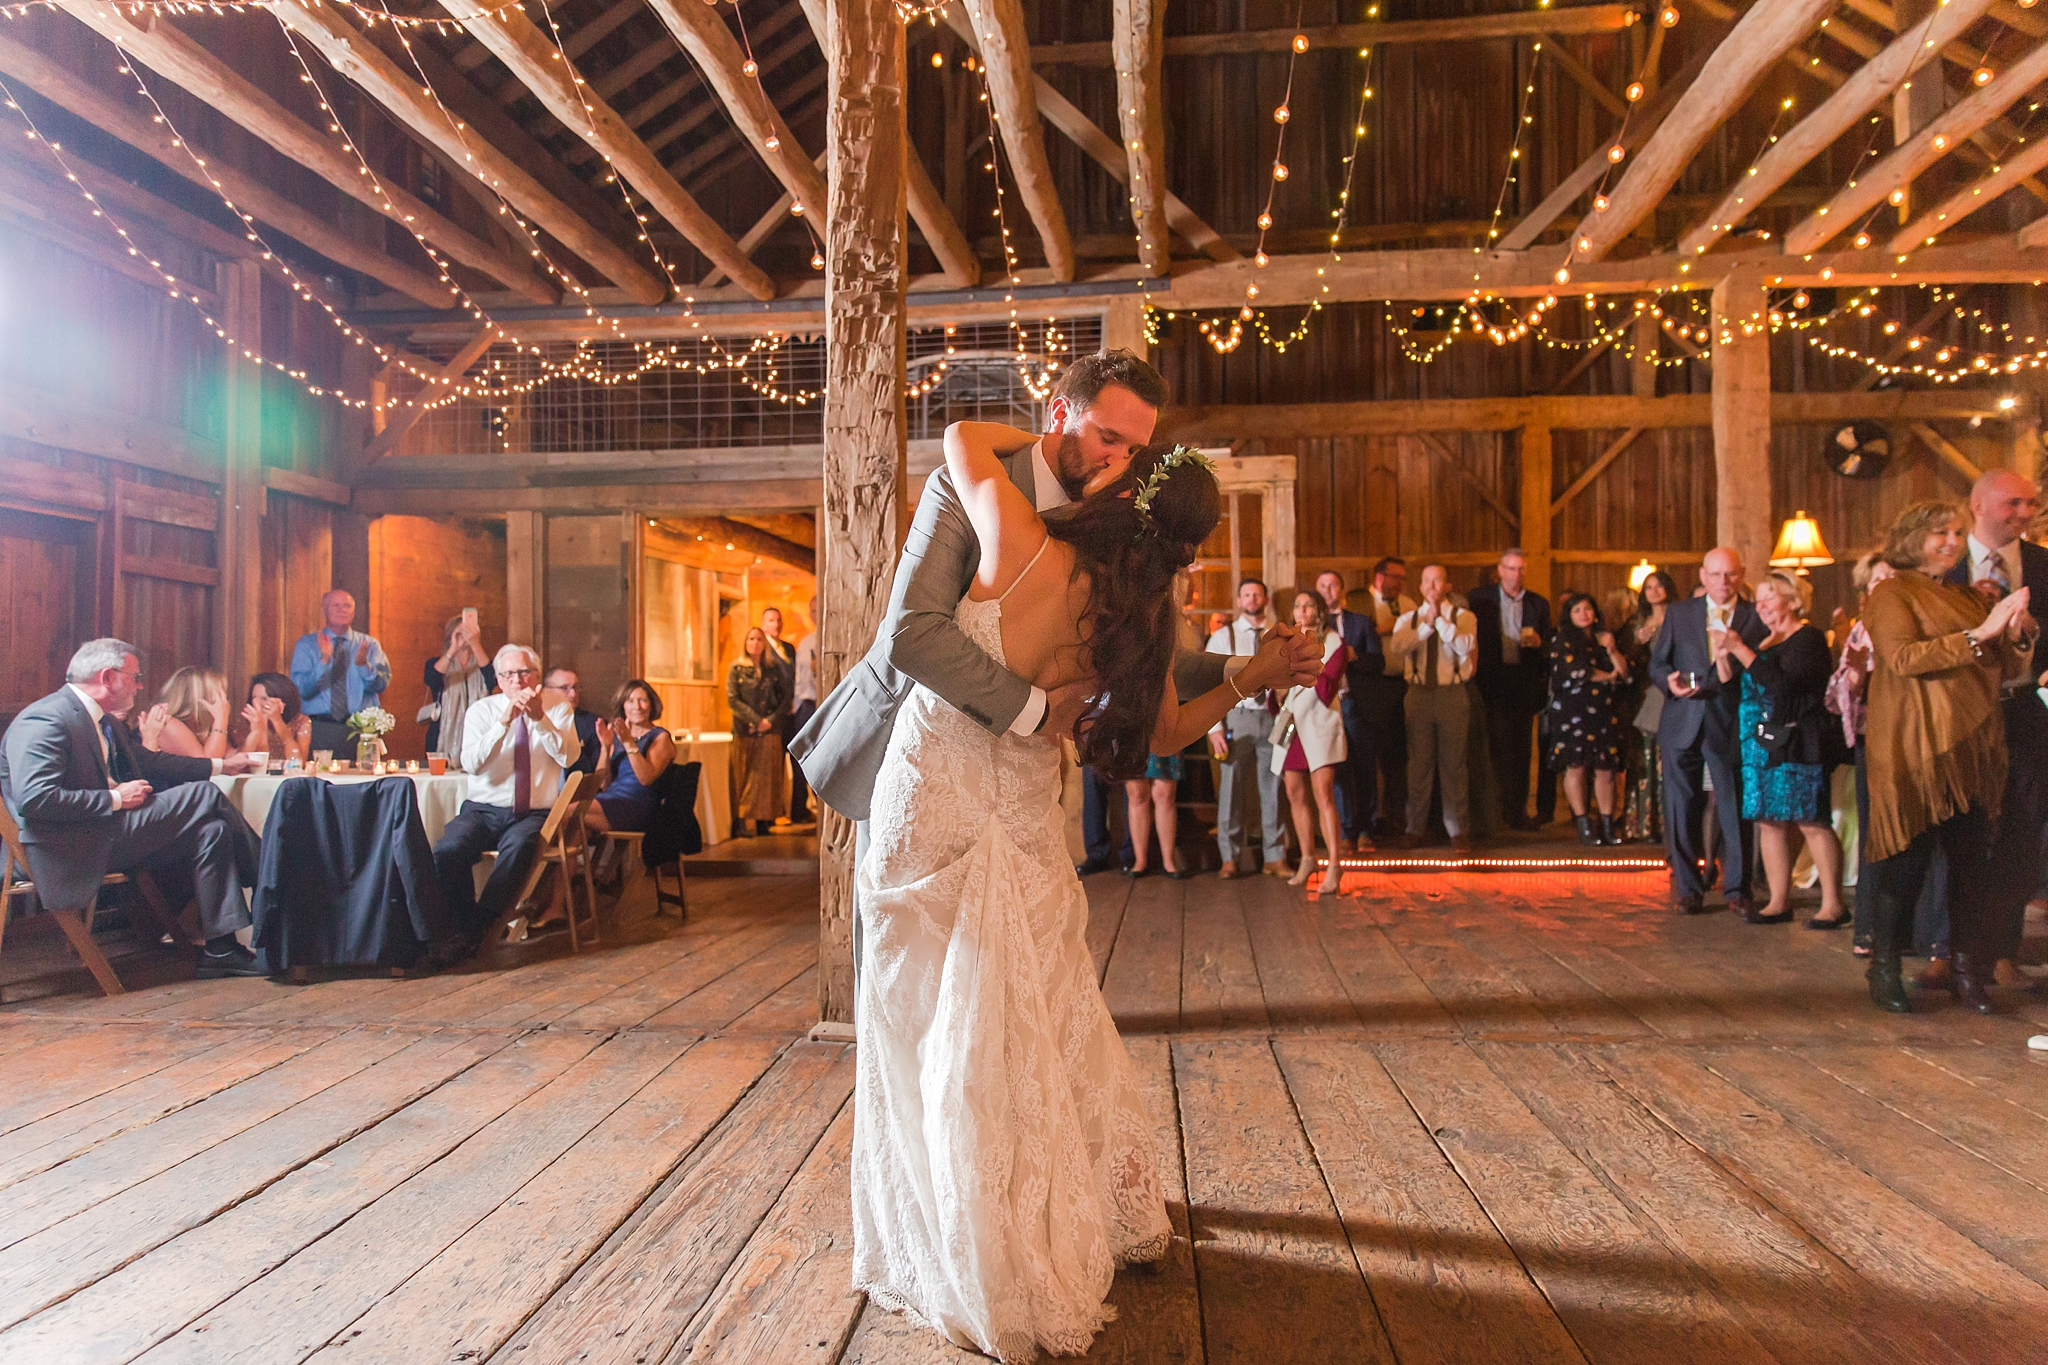 natural-rustic-wedding-photos-at-frutig-farms-the-valley-in-ann-arbor-michigan-by-courtney-carolyn-photography_0089.jpg